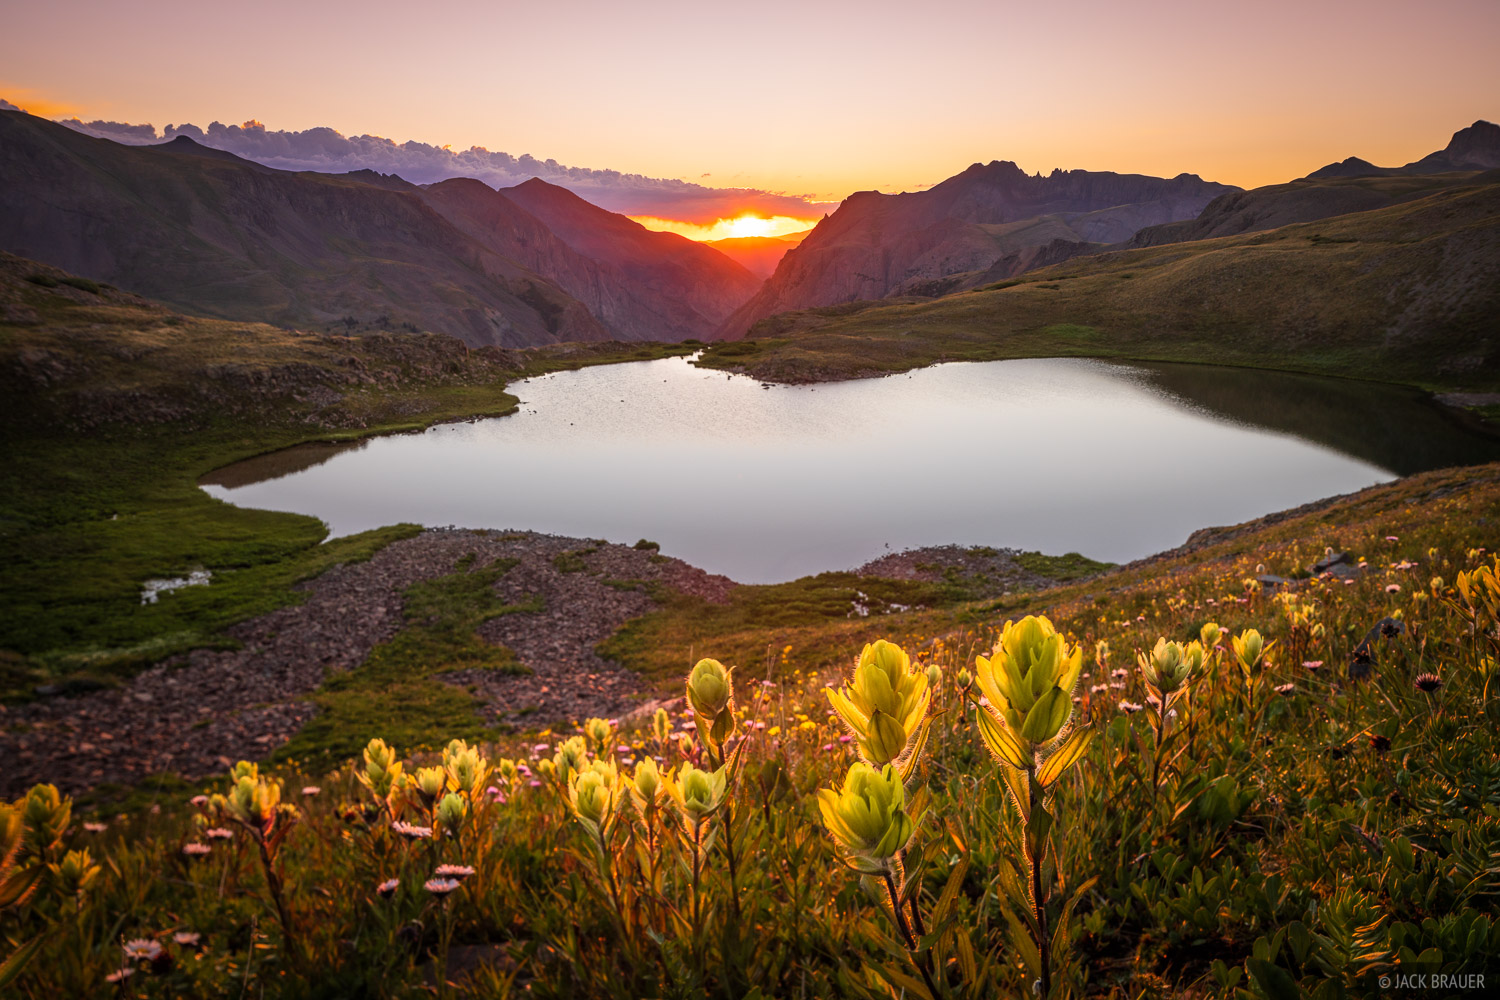 Sunrise light illuminates yellow Indian Paintbrush wildflowers at a high alpine lake in the San Juan Mountains.